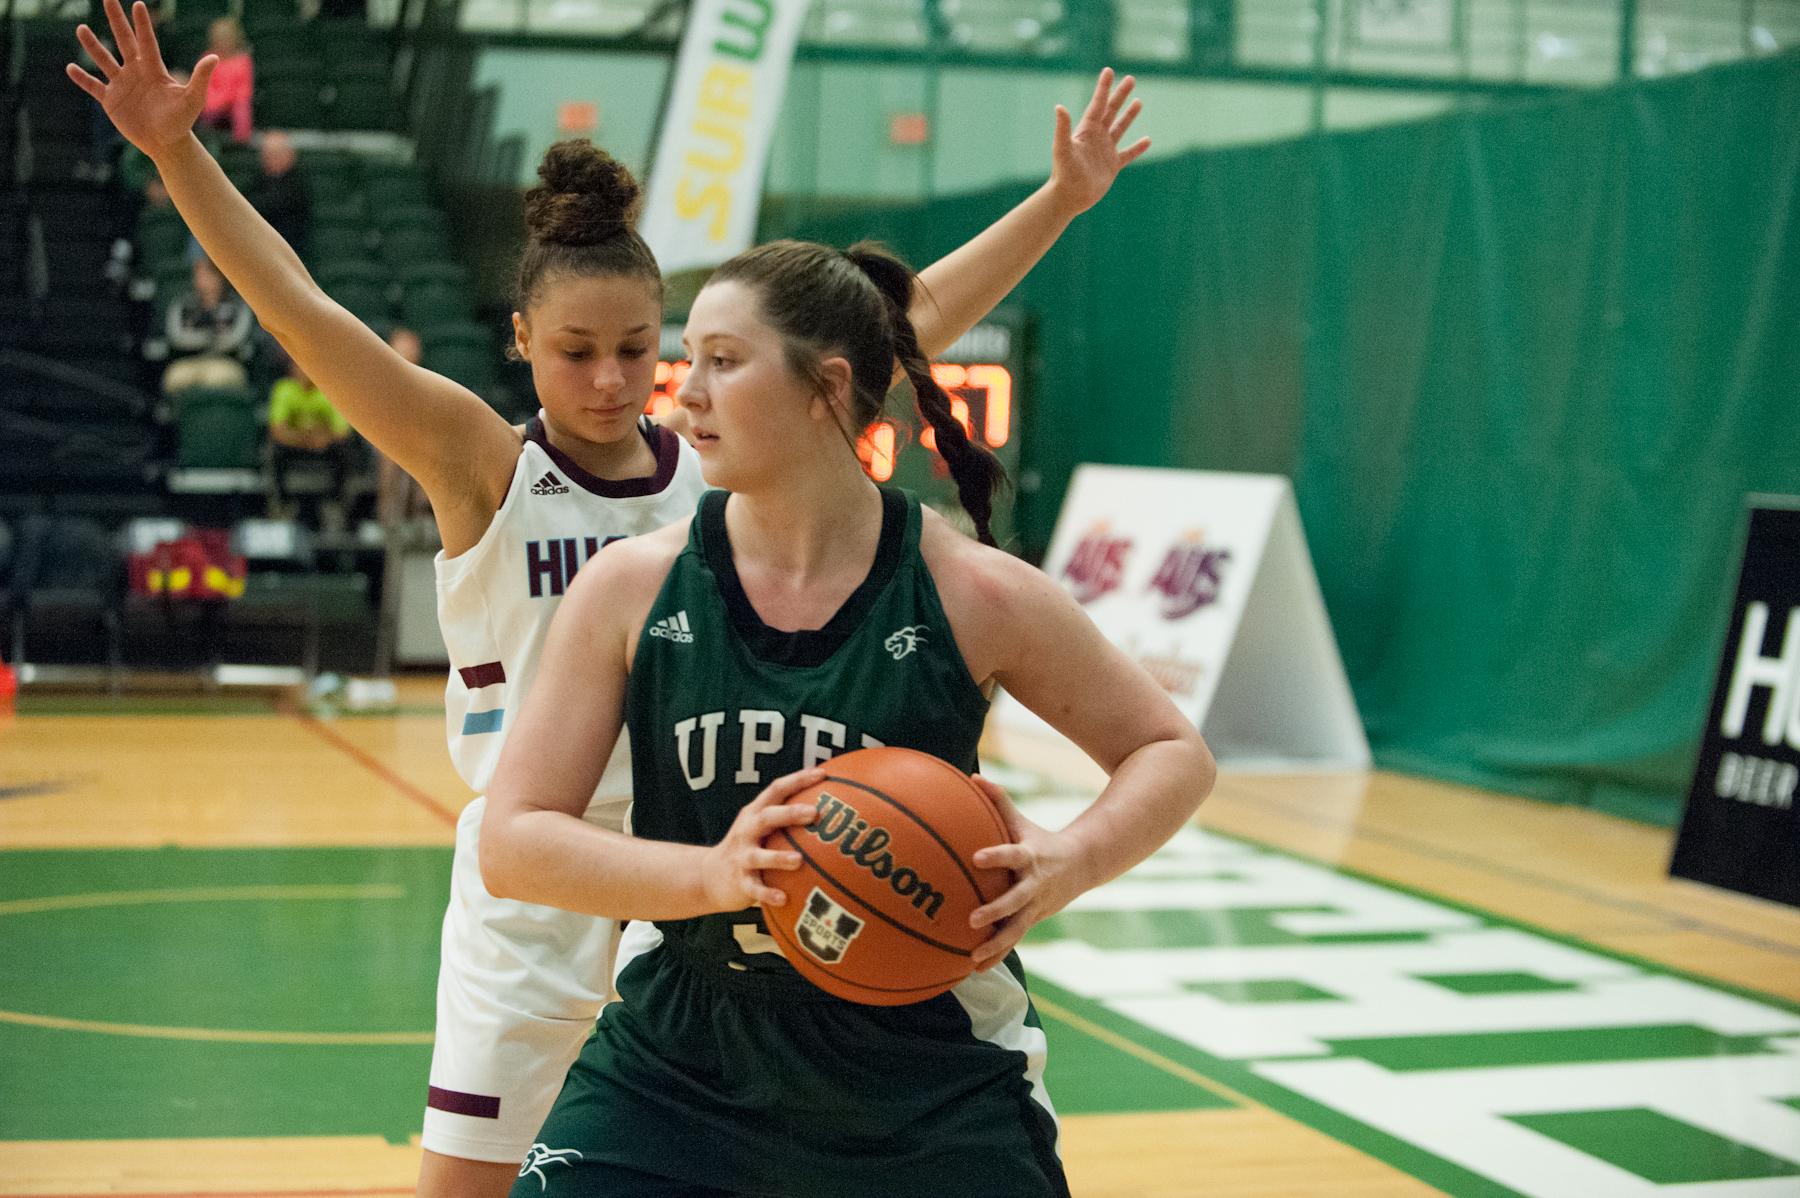 Reese Baxendale's fourth-quarter outburst deflates Huskies in 60-57 win